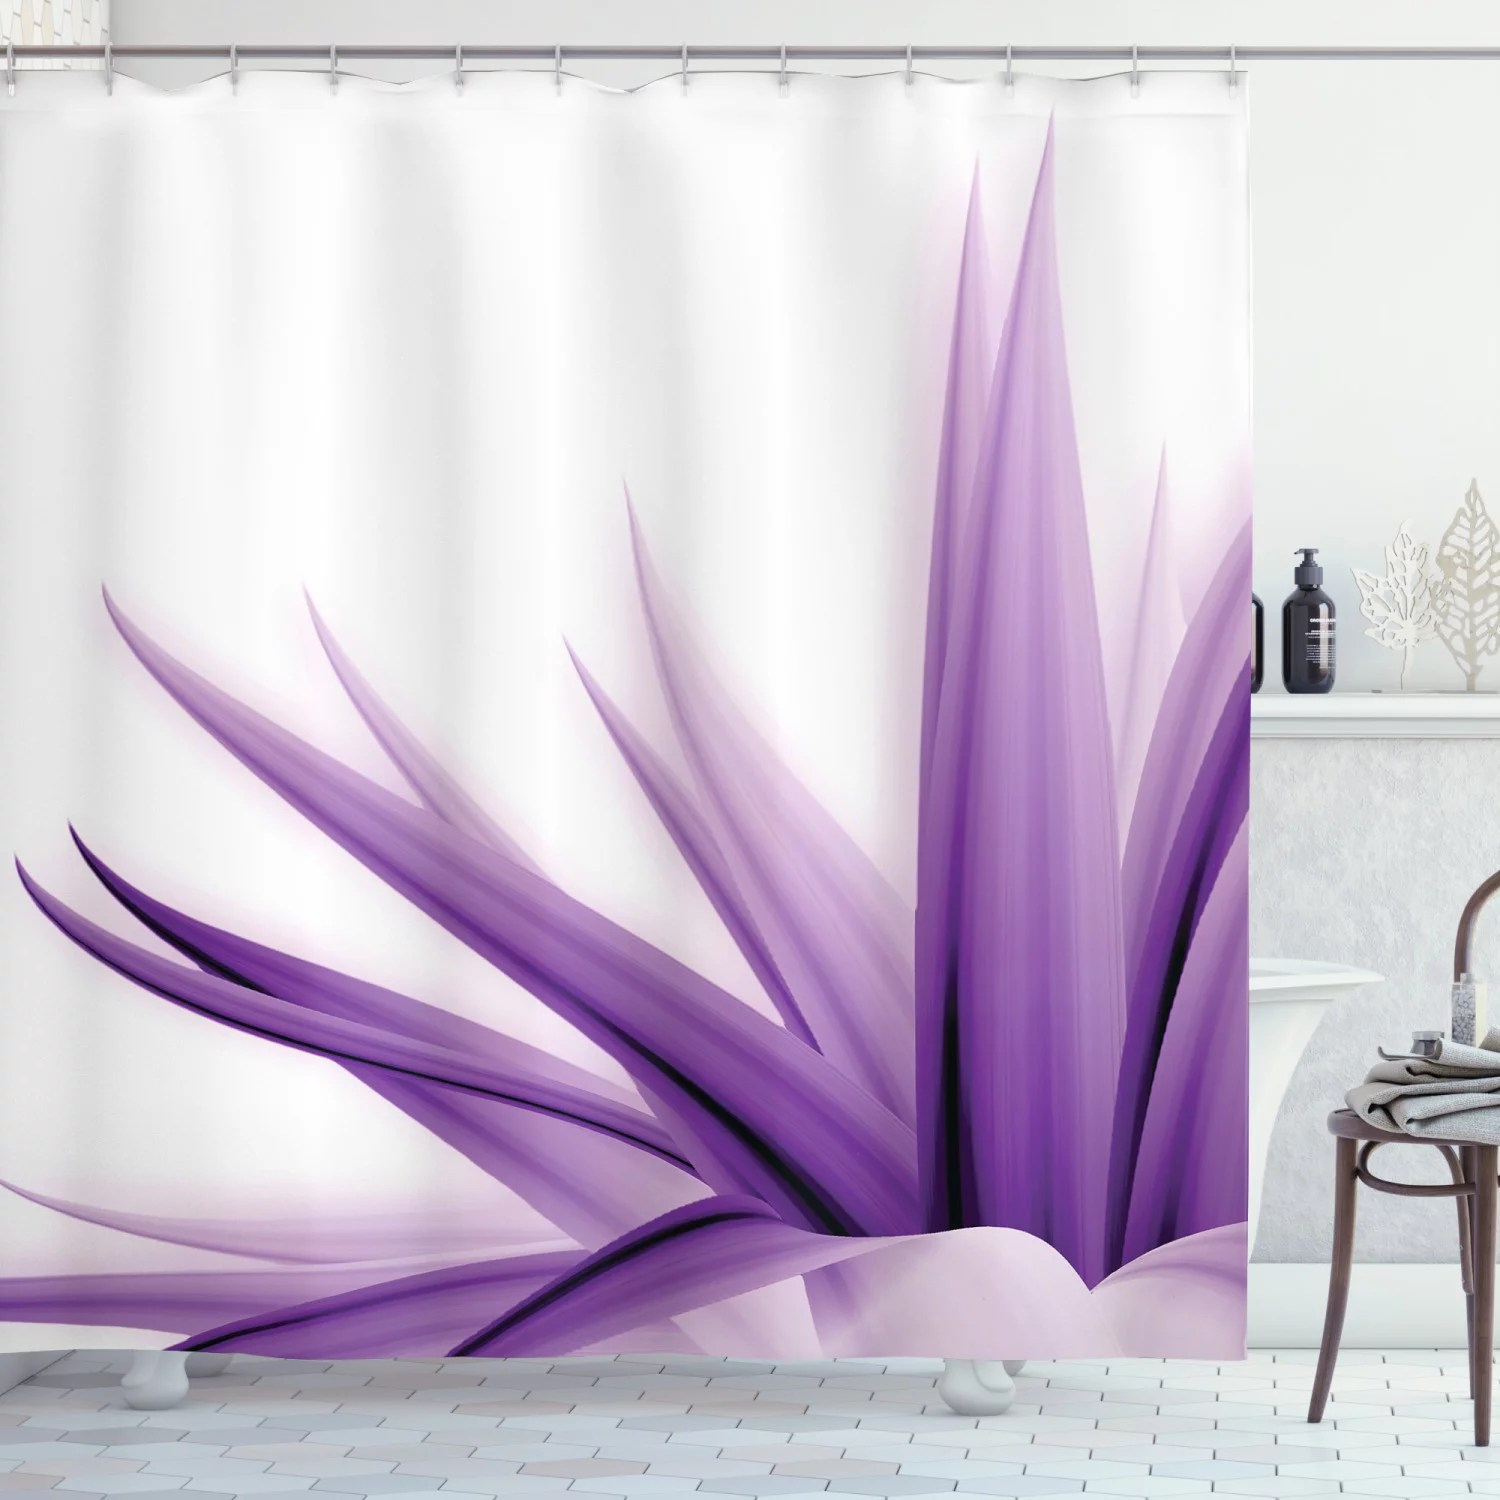 flower shower curtain purple ombre style long leaves water colored print with calming details image fabric bathroom set with hooks purple and